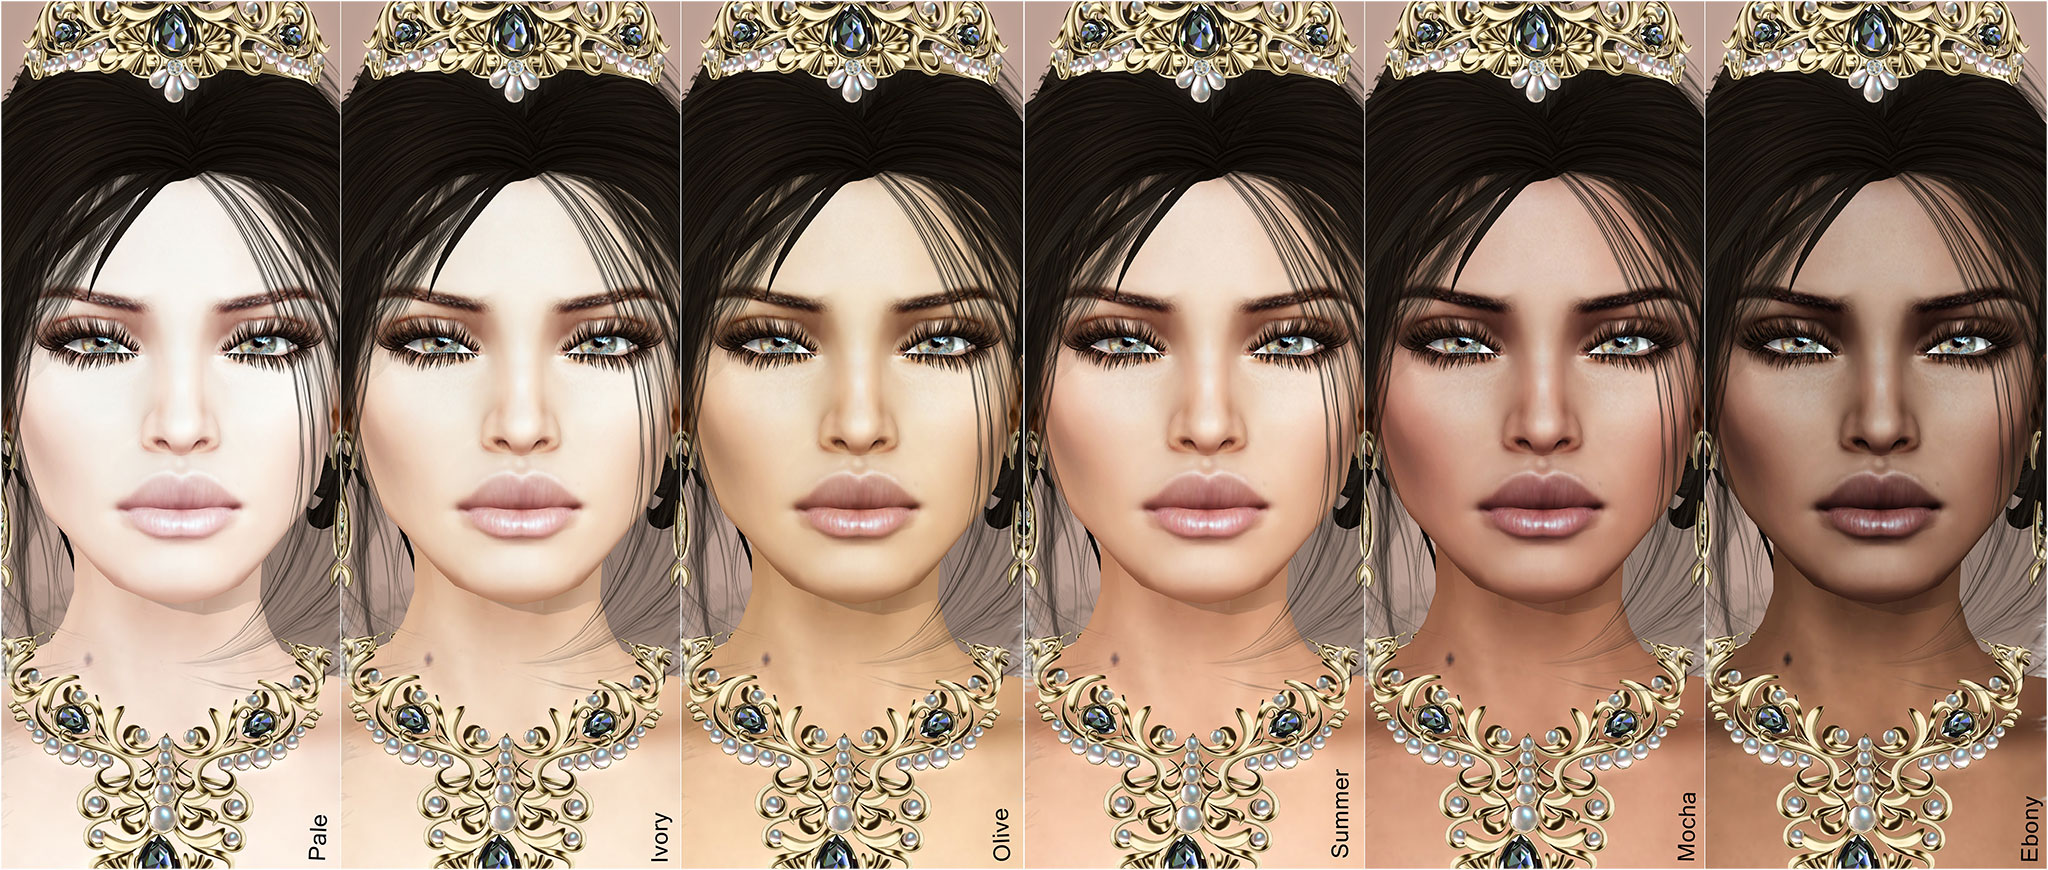 New-Faces-Diana-tones